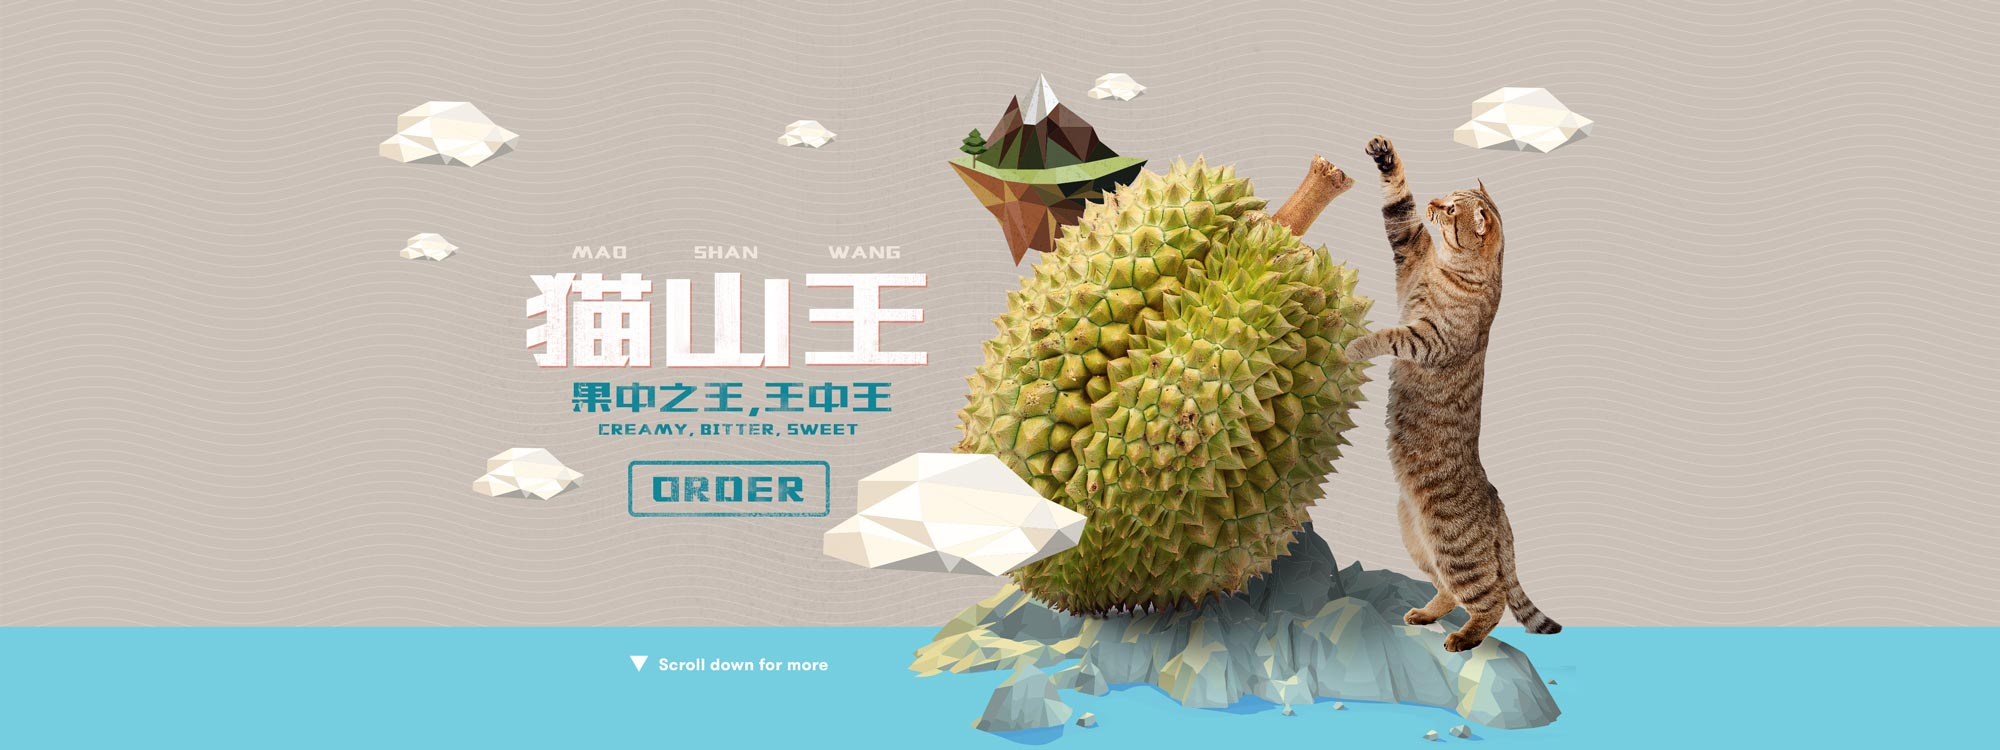 Durian Delivery Mao Shan Wang